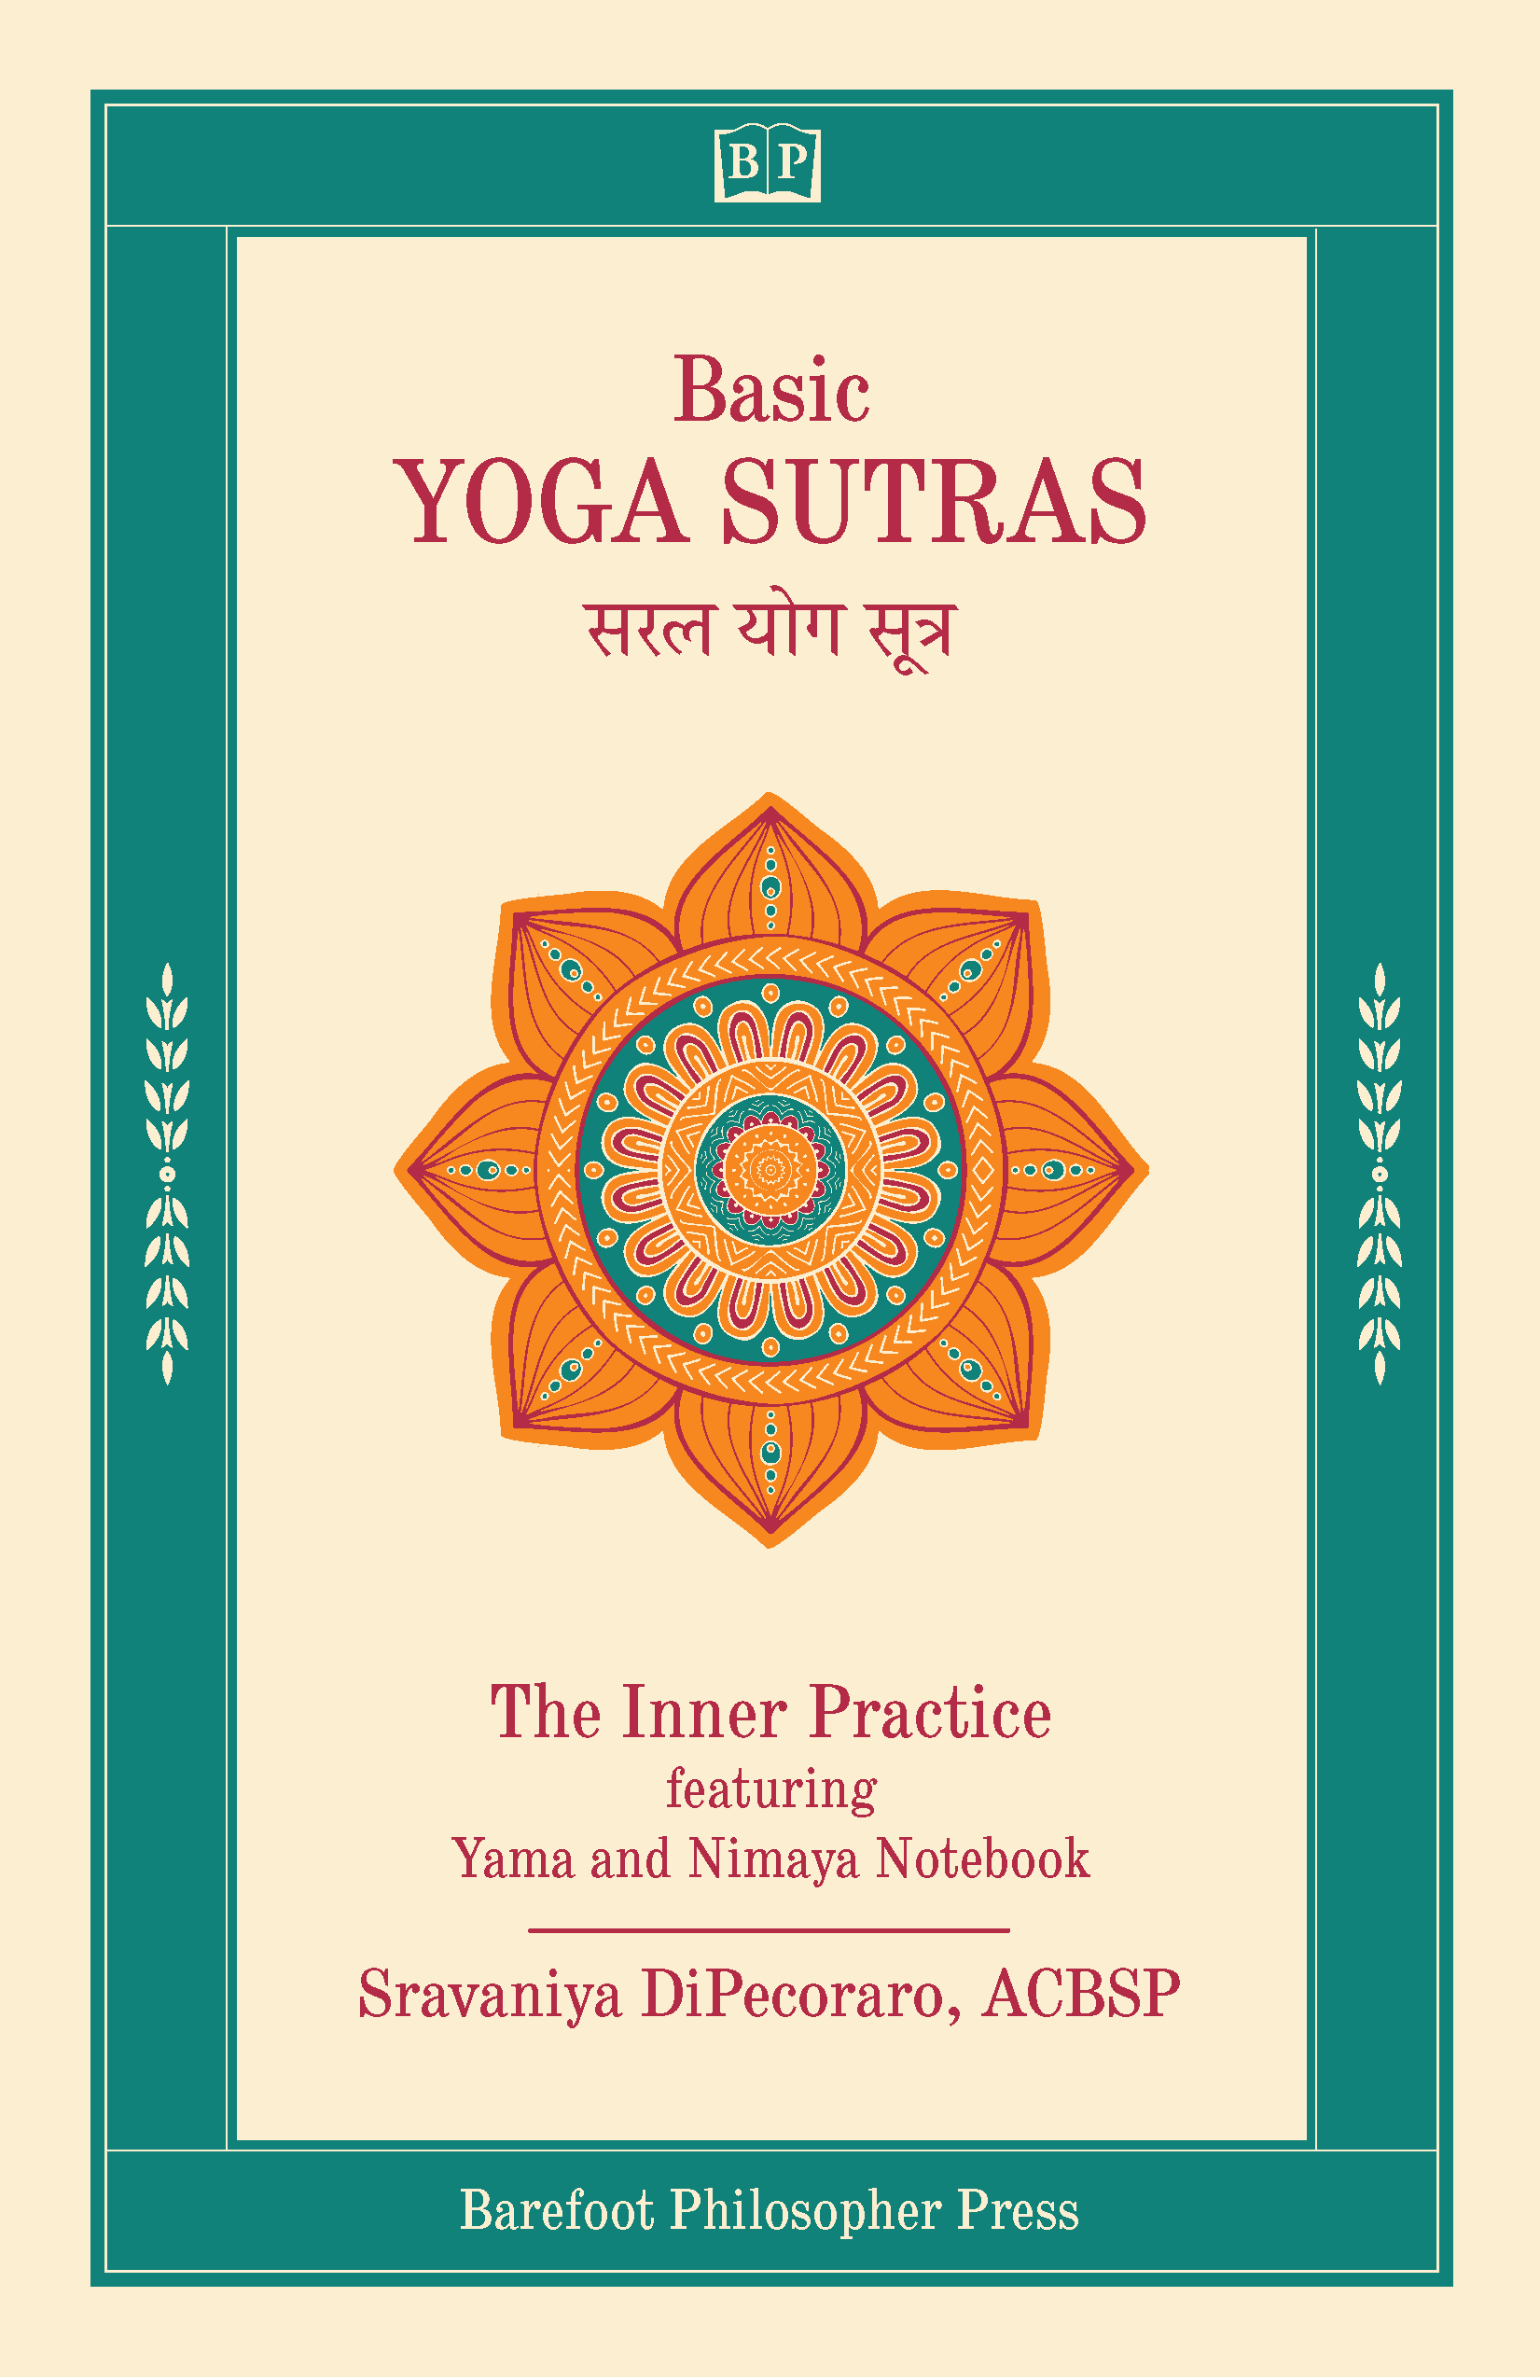 yoga sutra-01.png